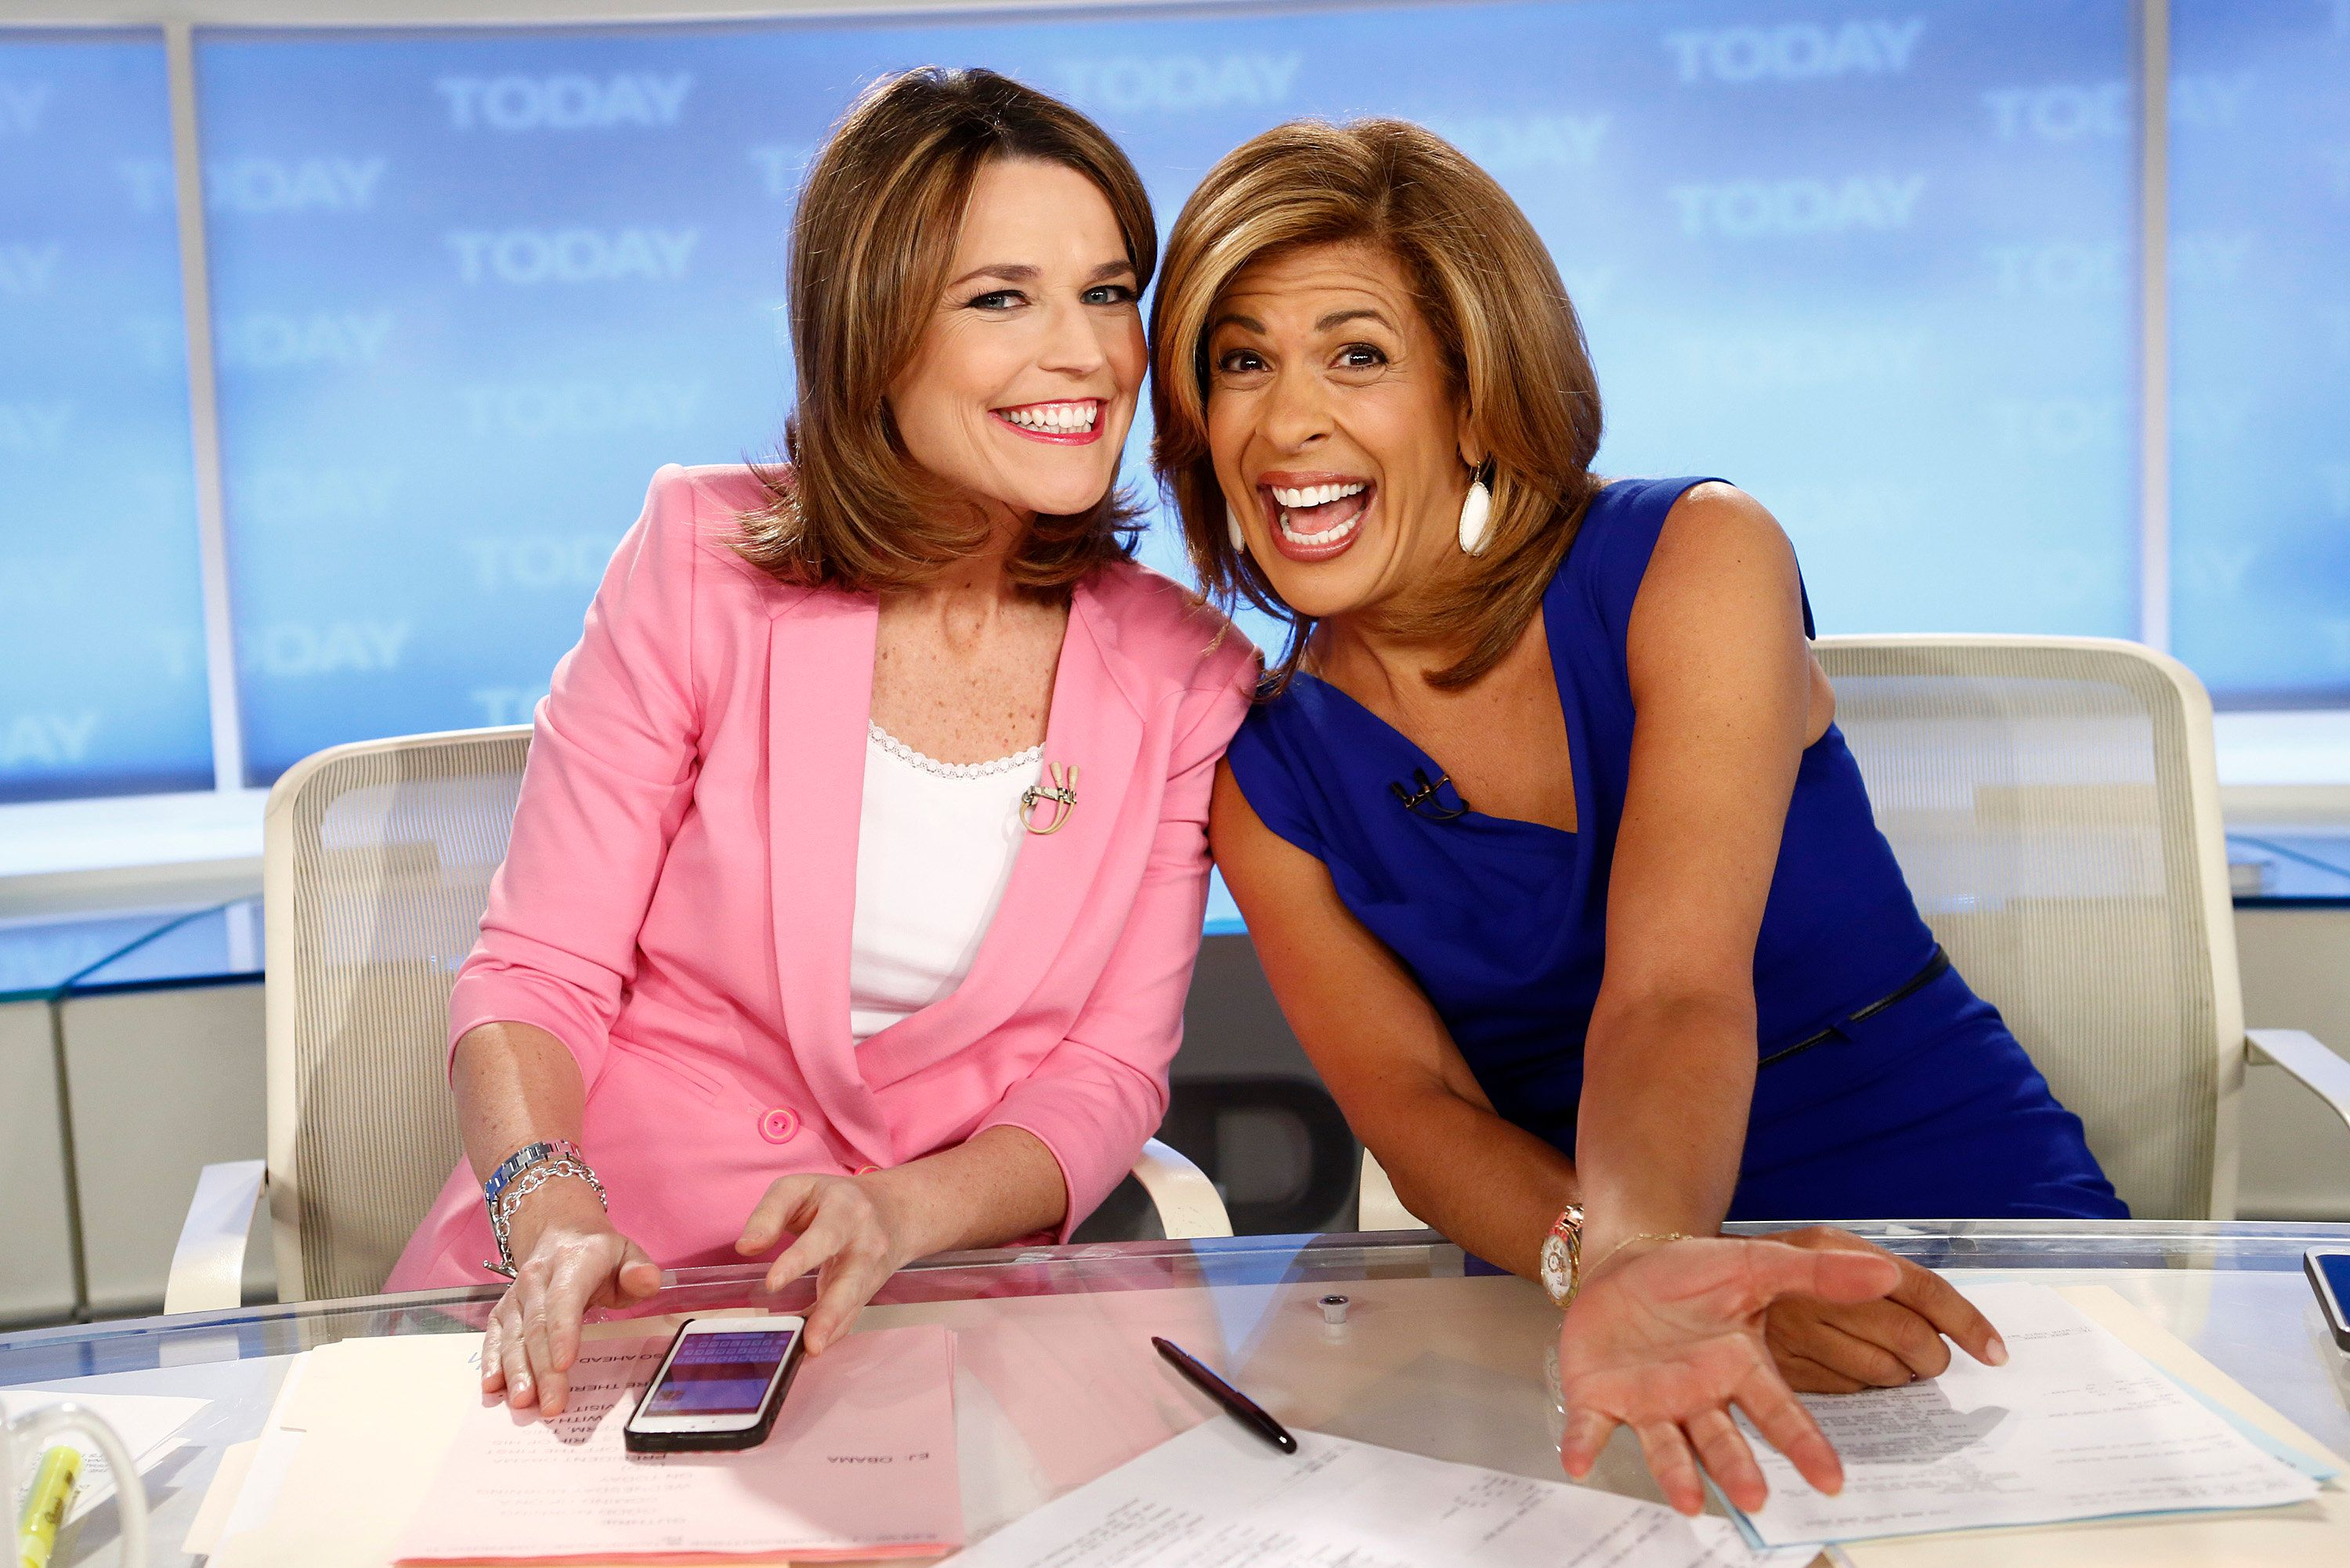 TODAY -- Pictured: (l-r) NBC News' Savannah Guthrie and Hoda Kotb appear on NBC News' 'Today' show on March 20, 2013 -- (Photo by: Peter Kramer/NBC/NBC NewsWire via Getty Images)